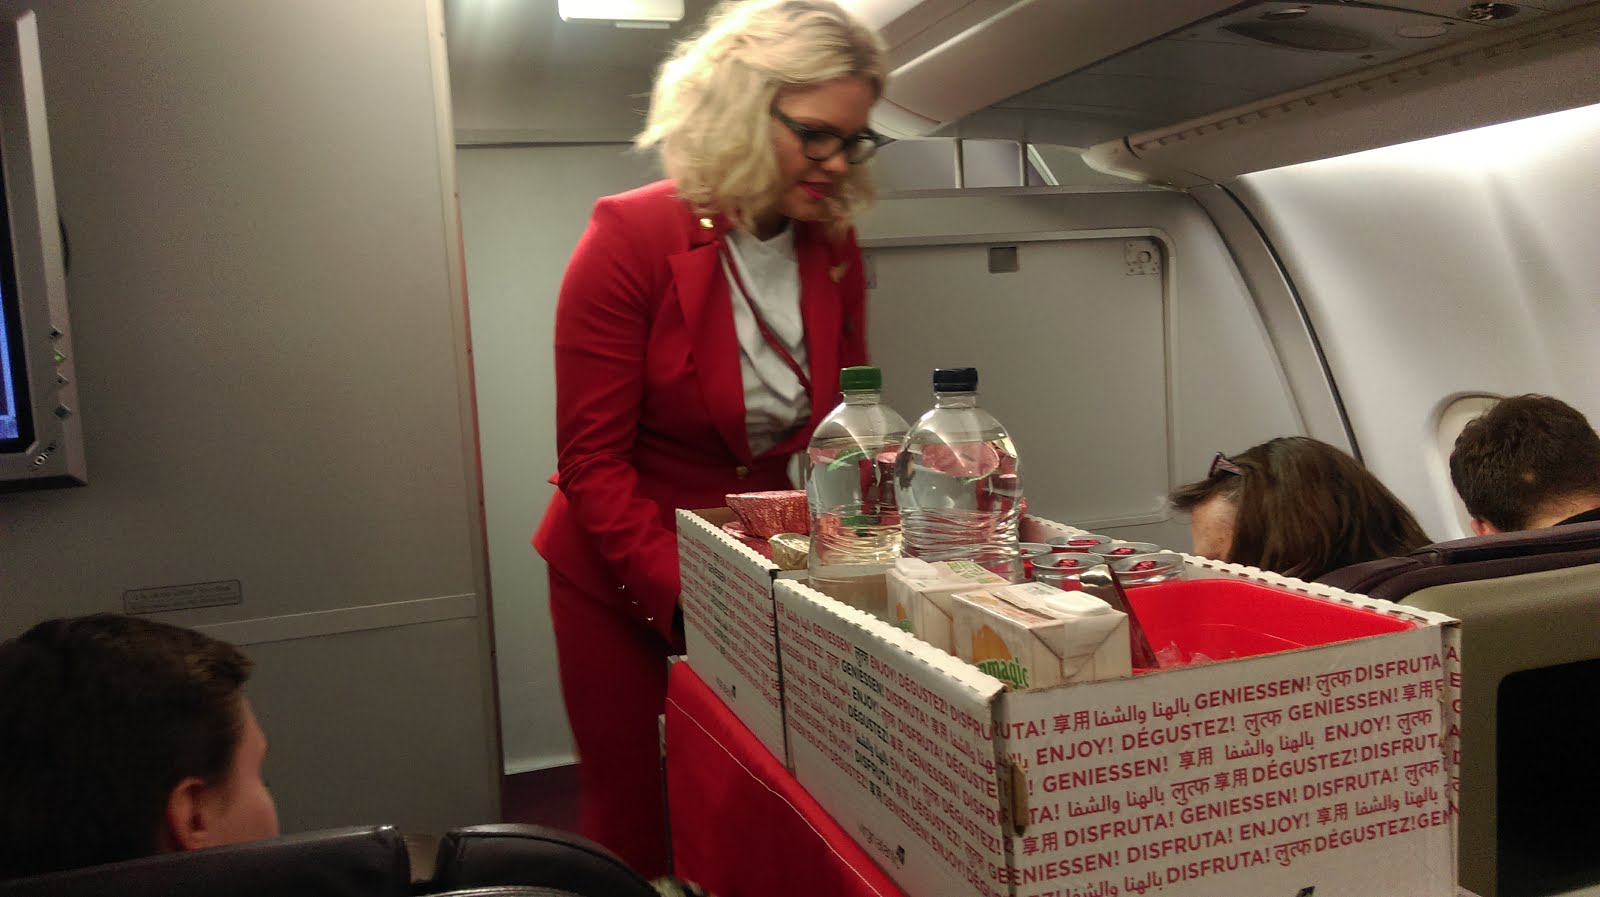 Behind the scenes at virginatlantic delta traveltuesday on this amazing trip to virgin atlantics hq based behind heathrow airport the impeccably dressed air hostess met us and took us through to a meet and kristyandbryce Image collections